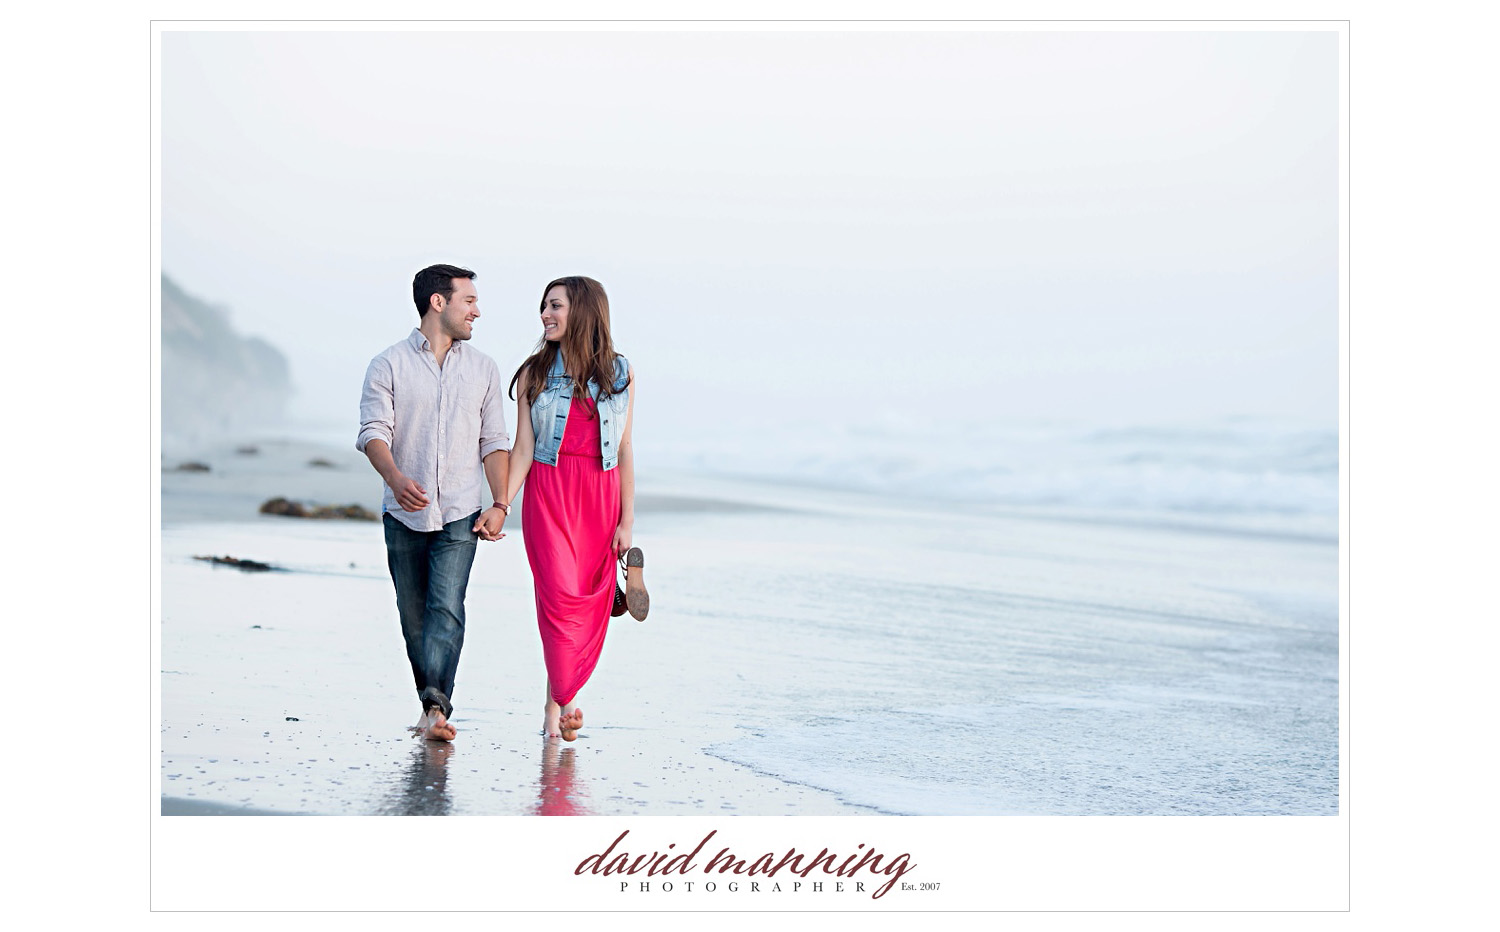 Encinitas-Engagement-Photos-San-Diego-David-Manning_0016.jpg